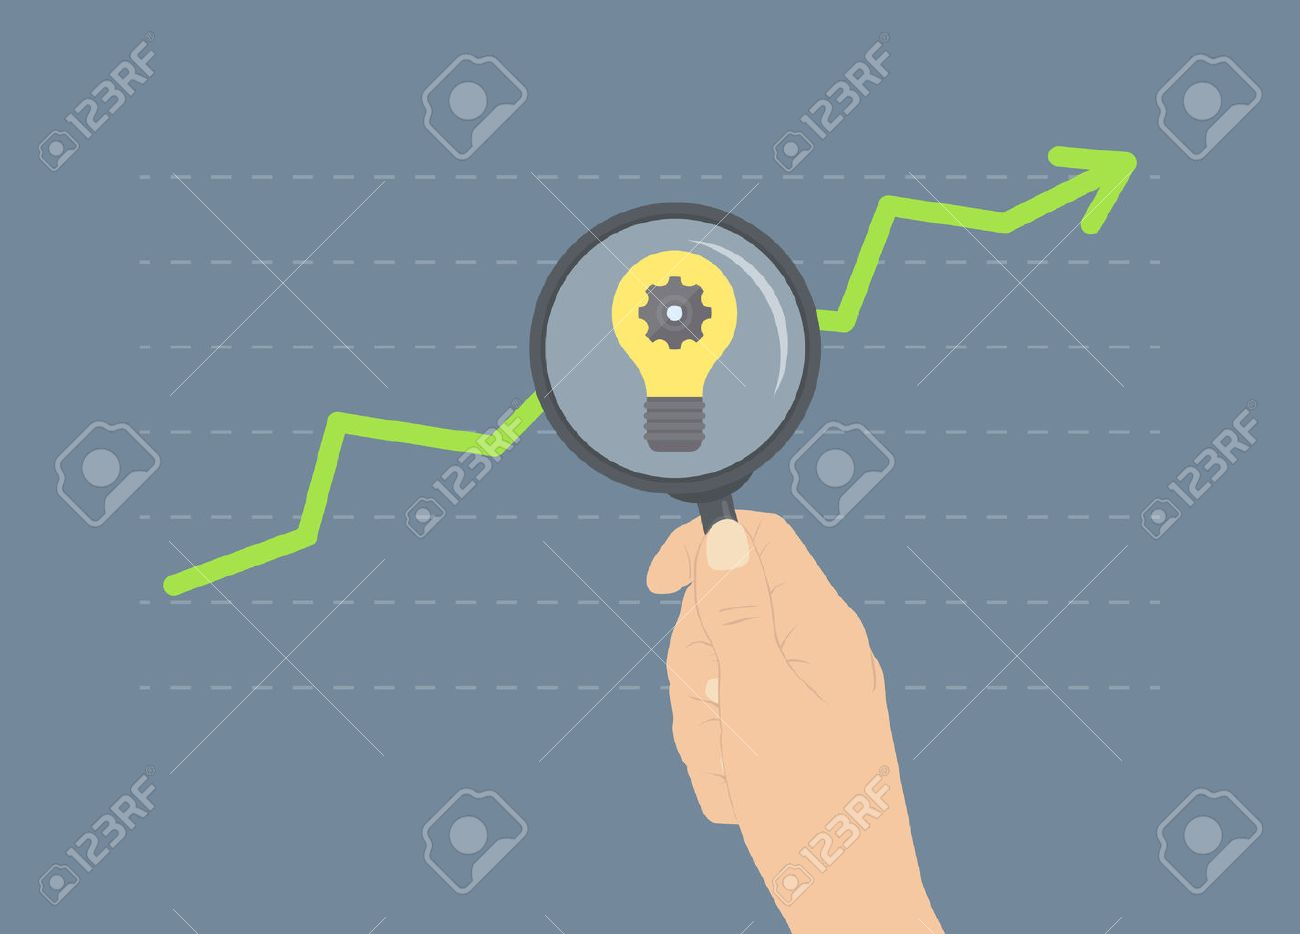 Flat design modern illustration concept of analyzing business rise, ideas for future growth, analytics of further financial and economic future Stock Vector - 24637644